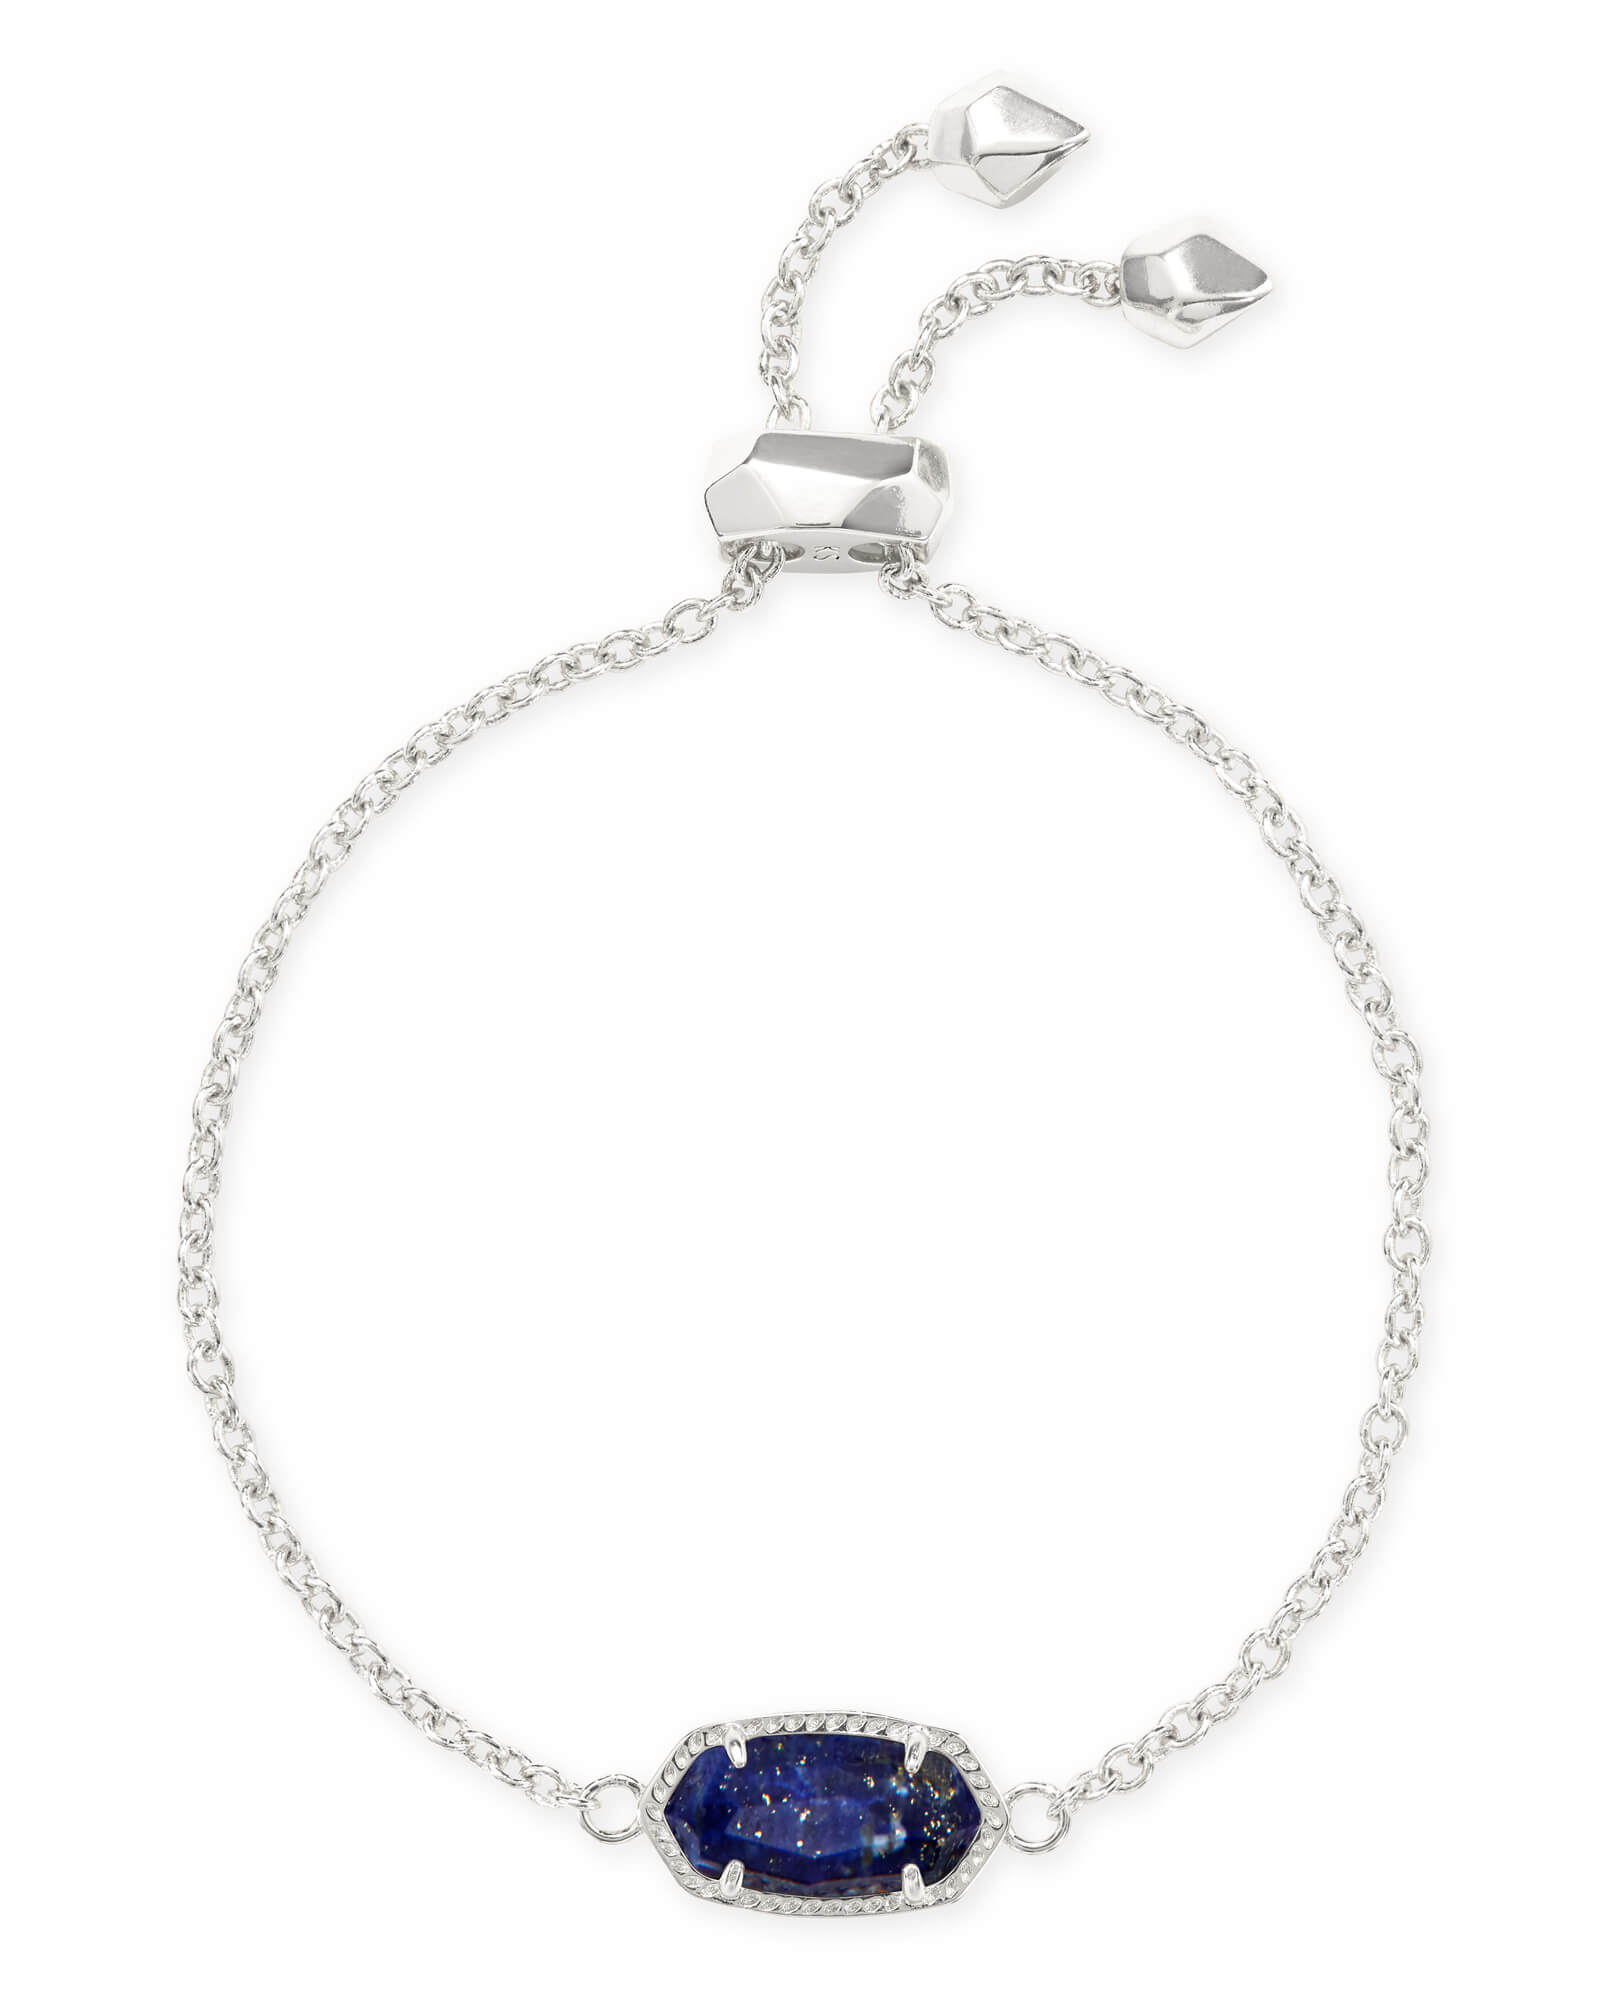 Elaina Bright Silver Adjustable Chain Bracelet in Blue Lapis